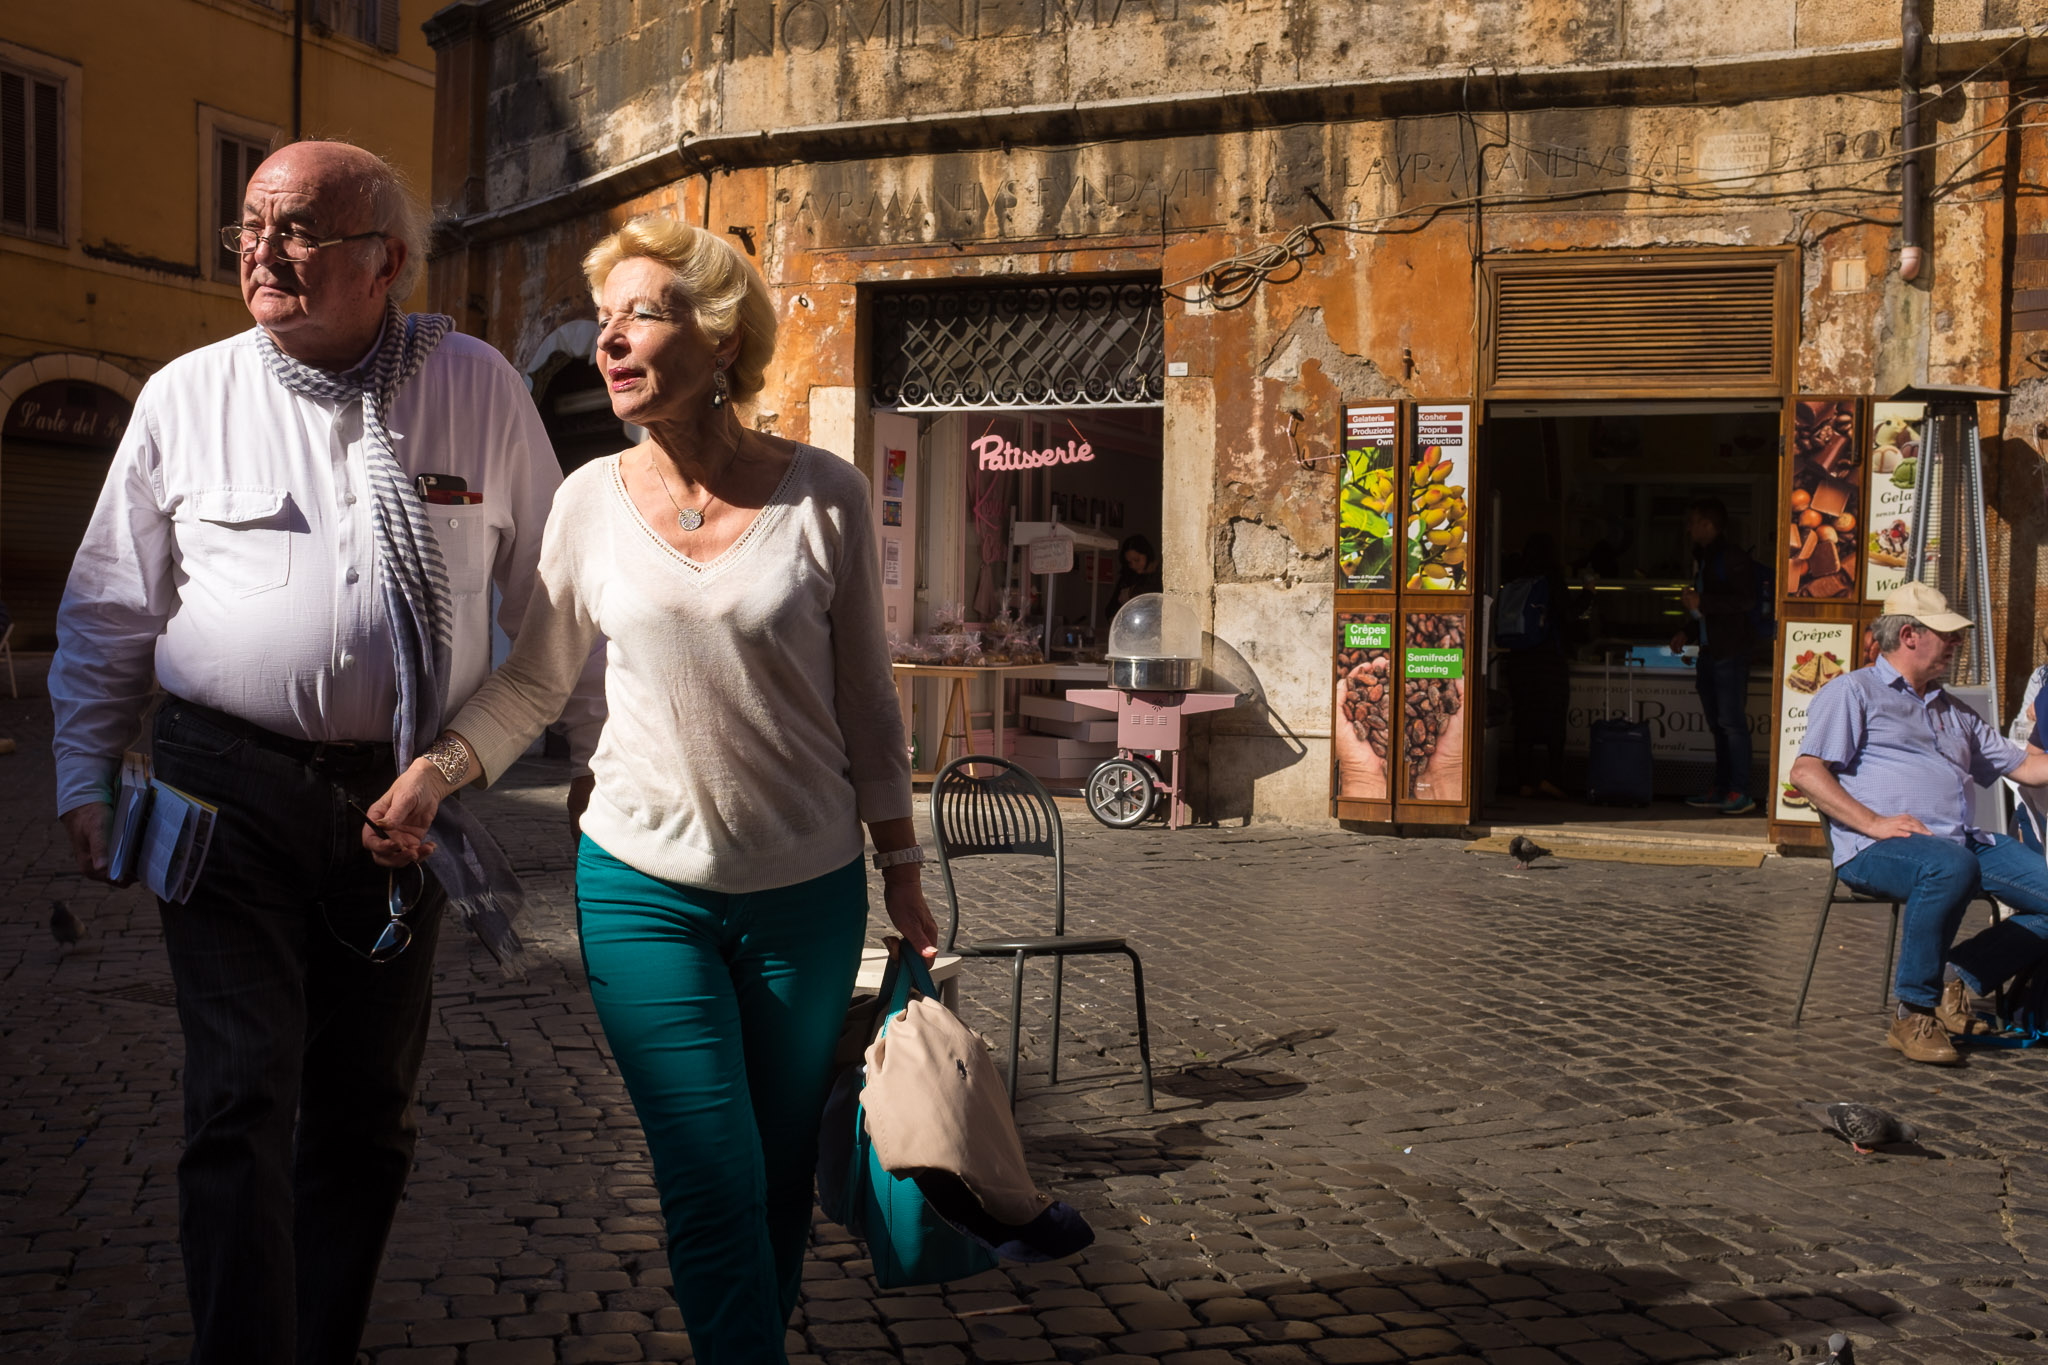 A couple walking through a shaft of light in the Jewish Ghetto in Rome